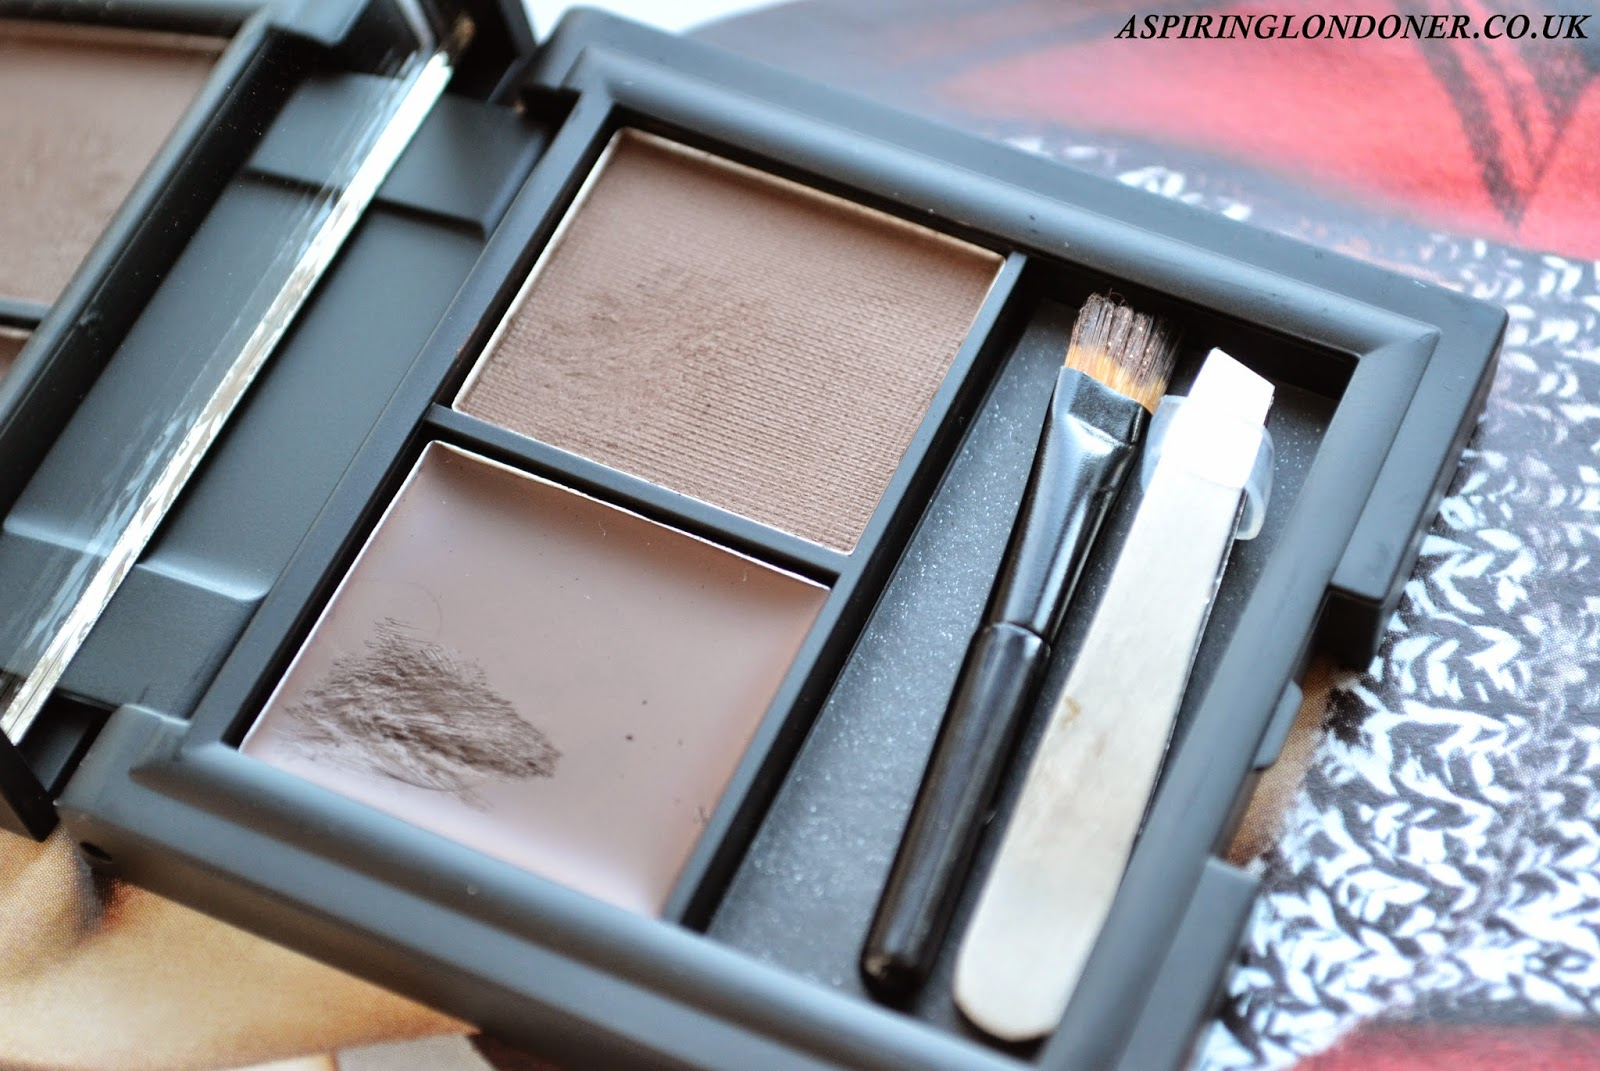 Sleek Makeup Brow Kit in Dark Review - Aspiring Londoner